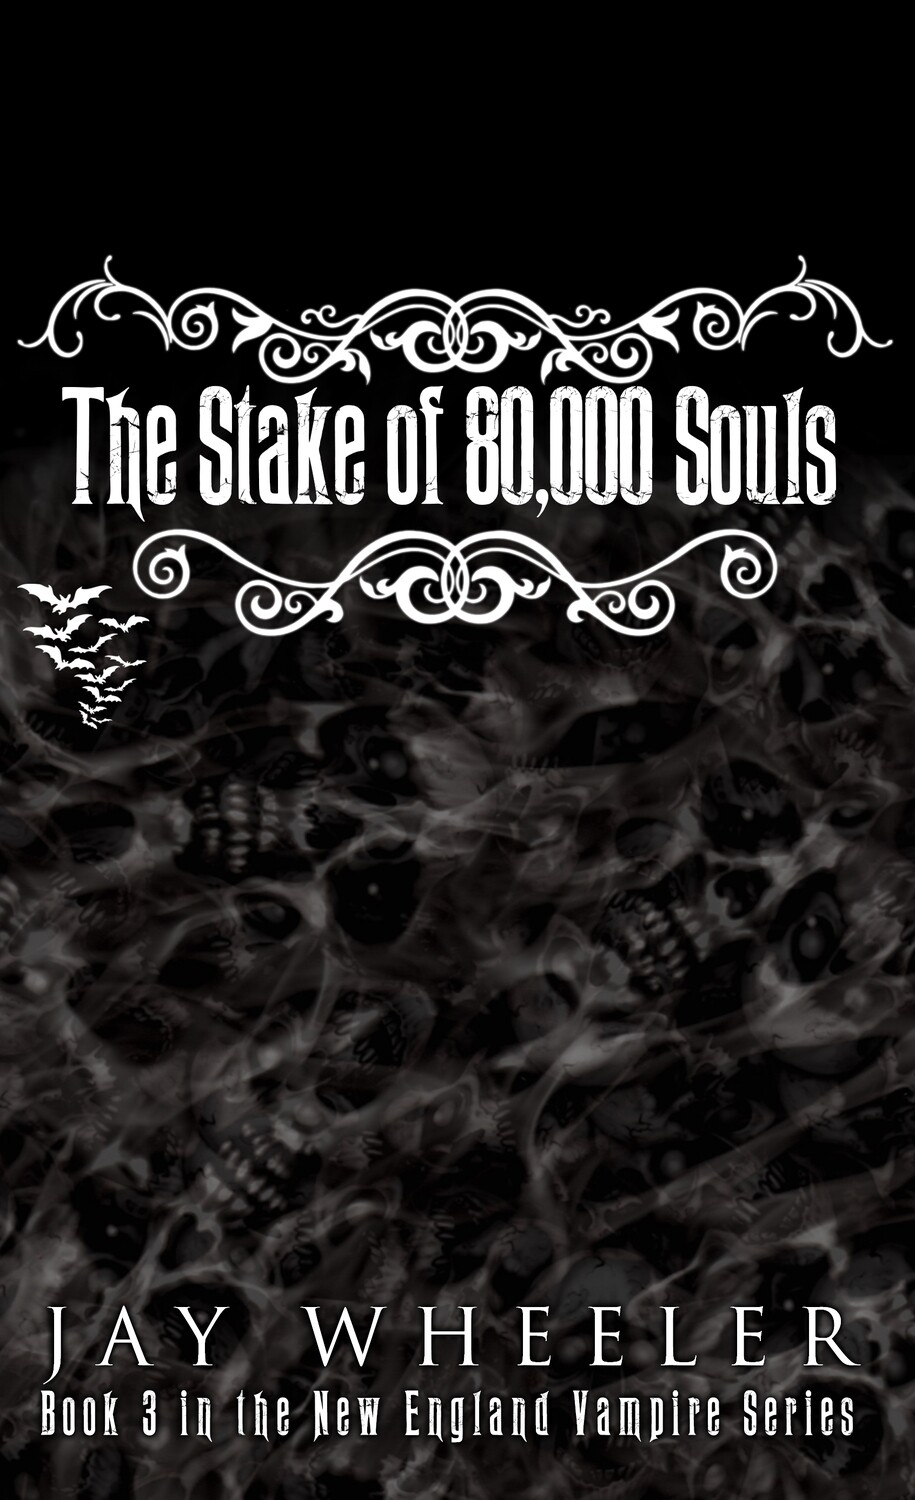 The New England Vampire Book 3: The Stake of 80,000 Souls [Paperback] Book by Jay Wheeler